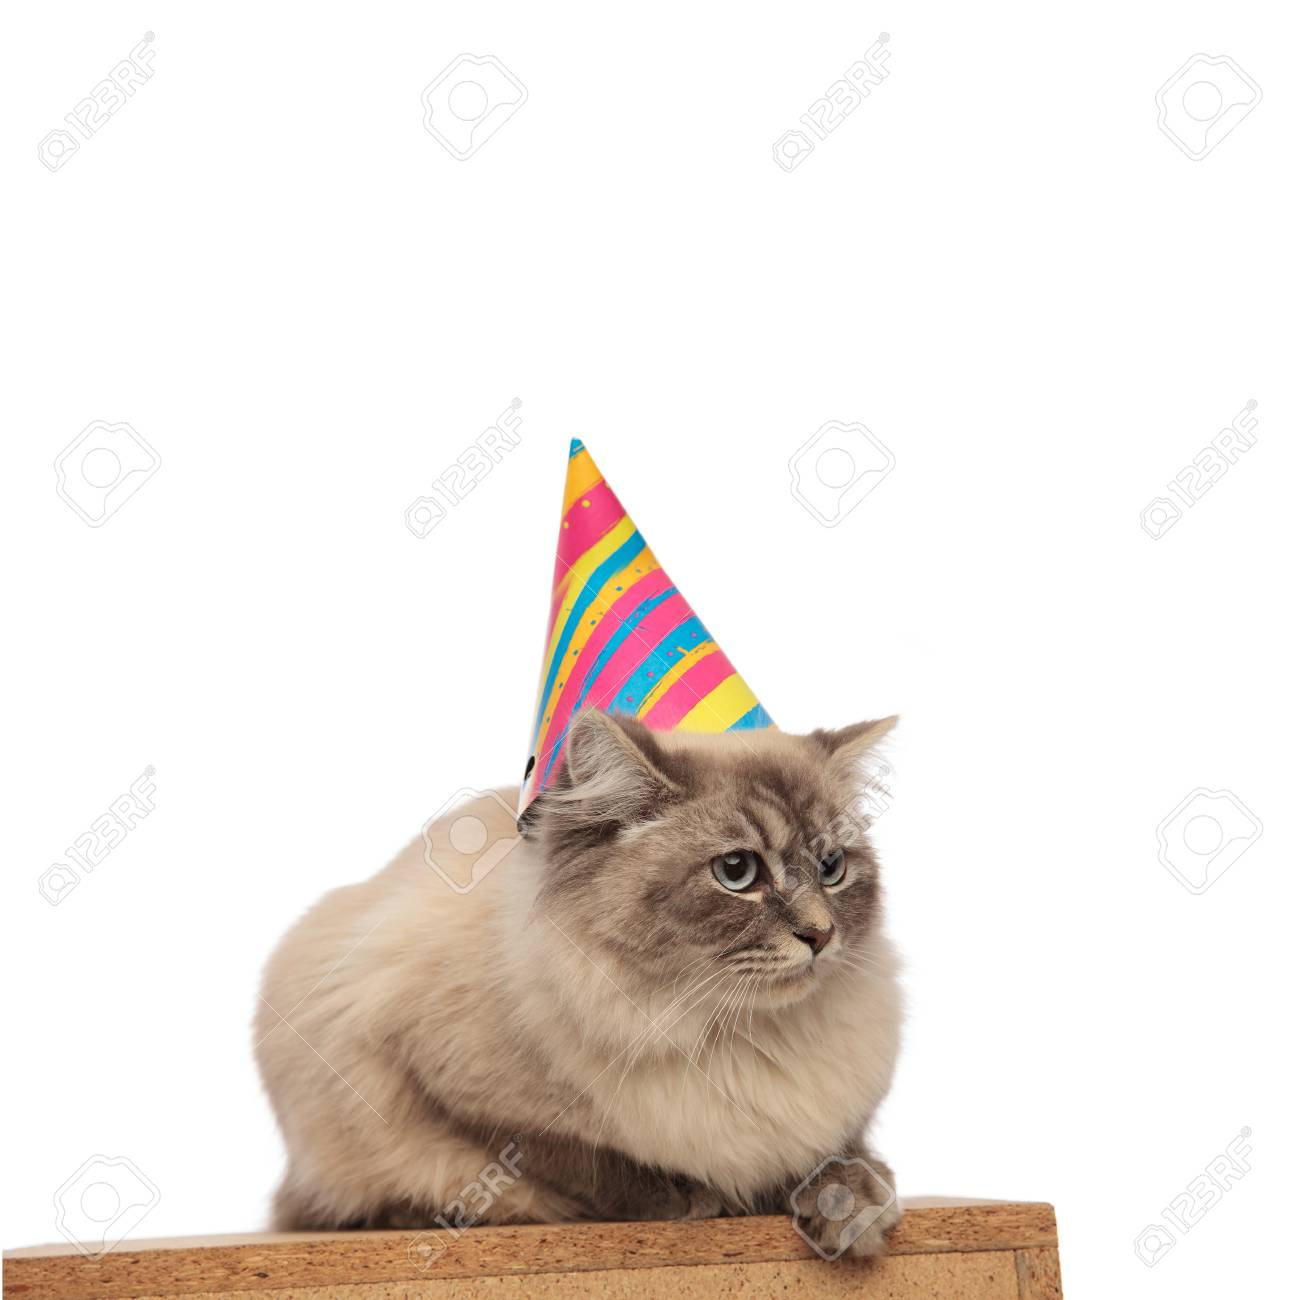 Adorable Birthday Cat With Blue Eyes And Cap Lies On A Wooden Box Looks